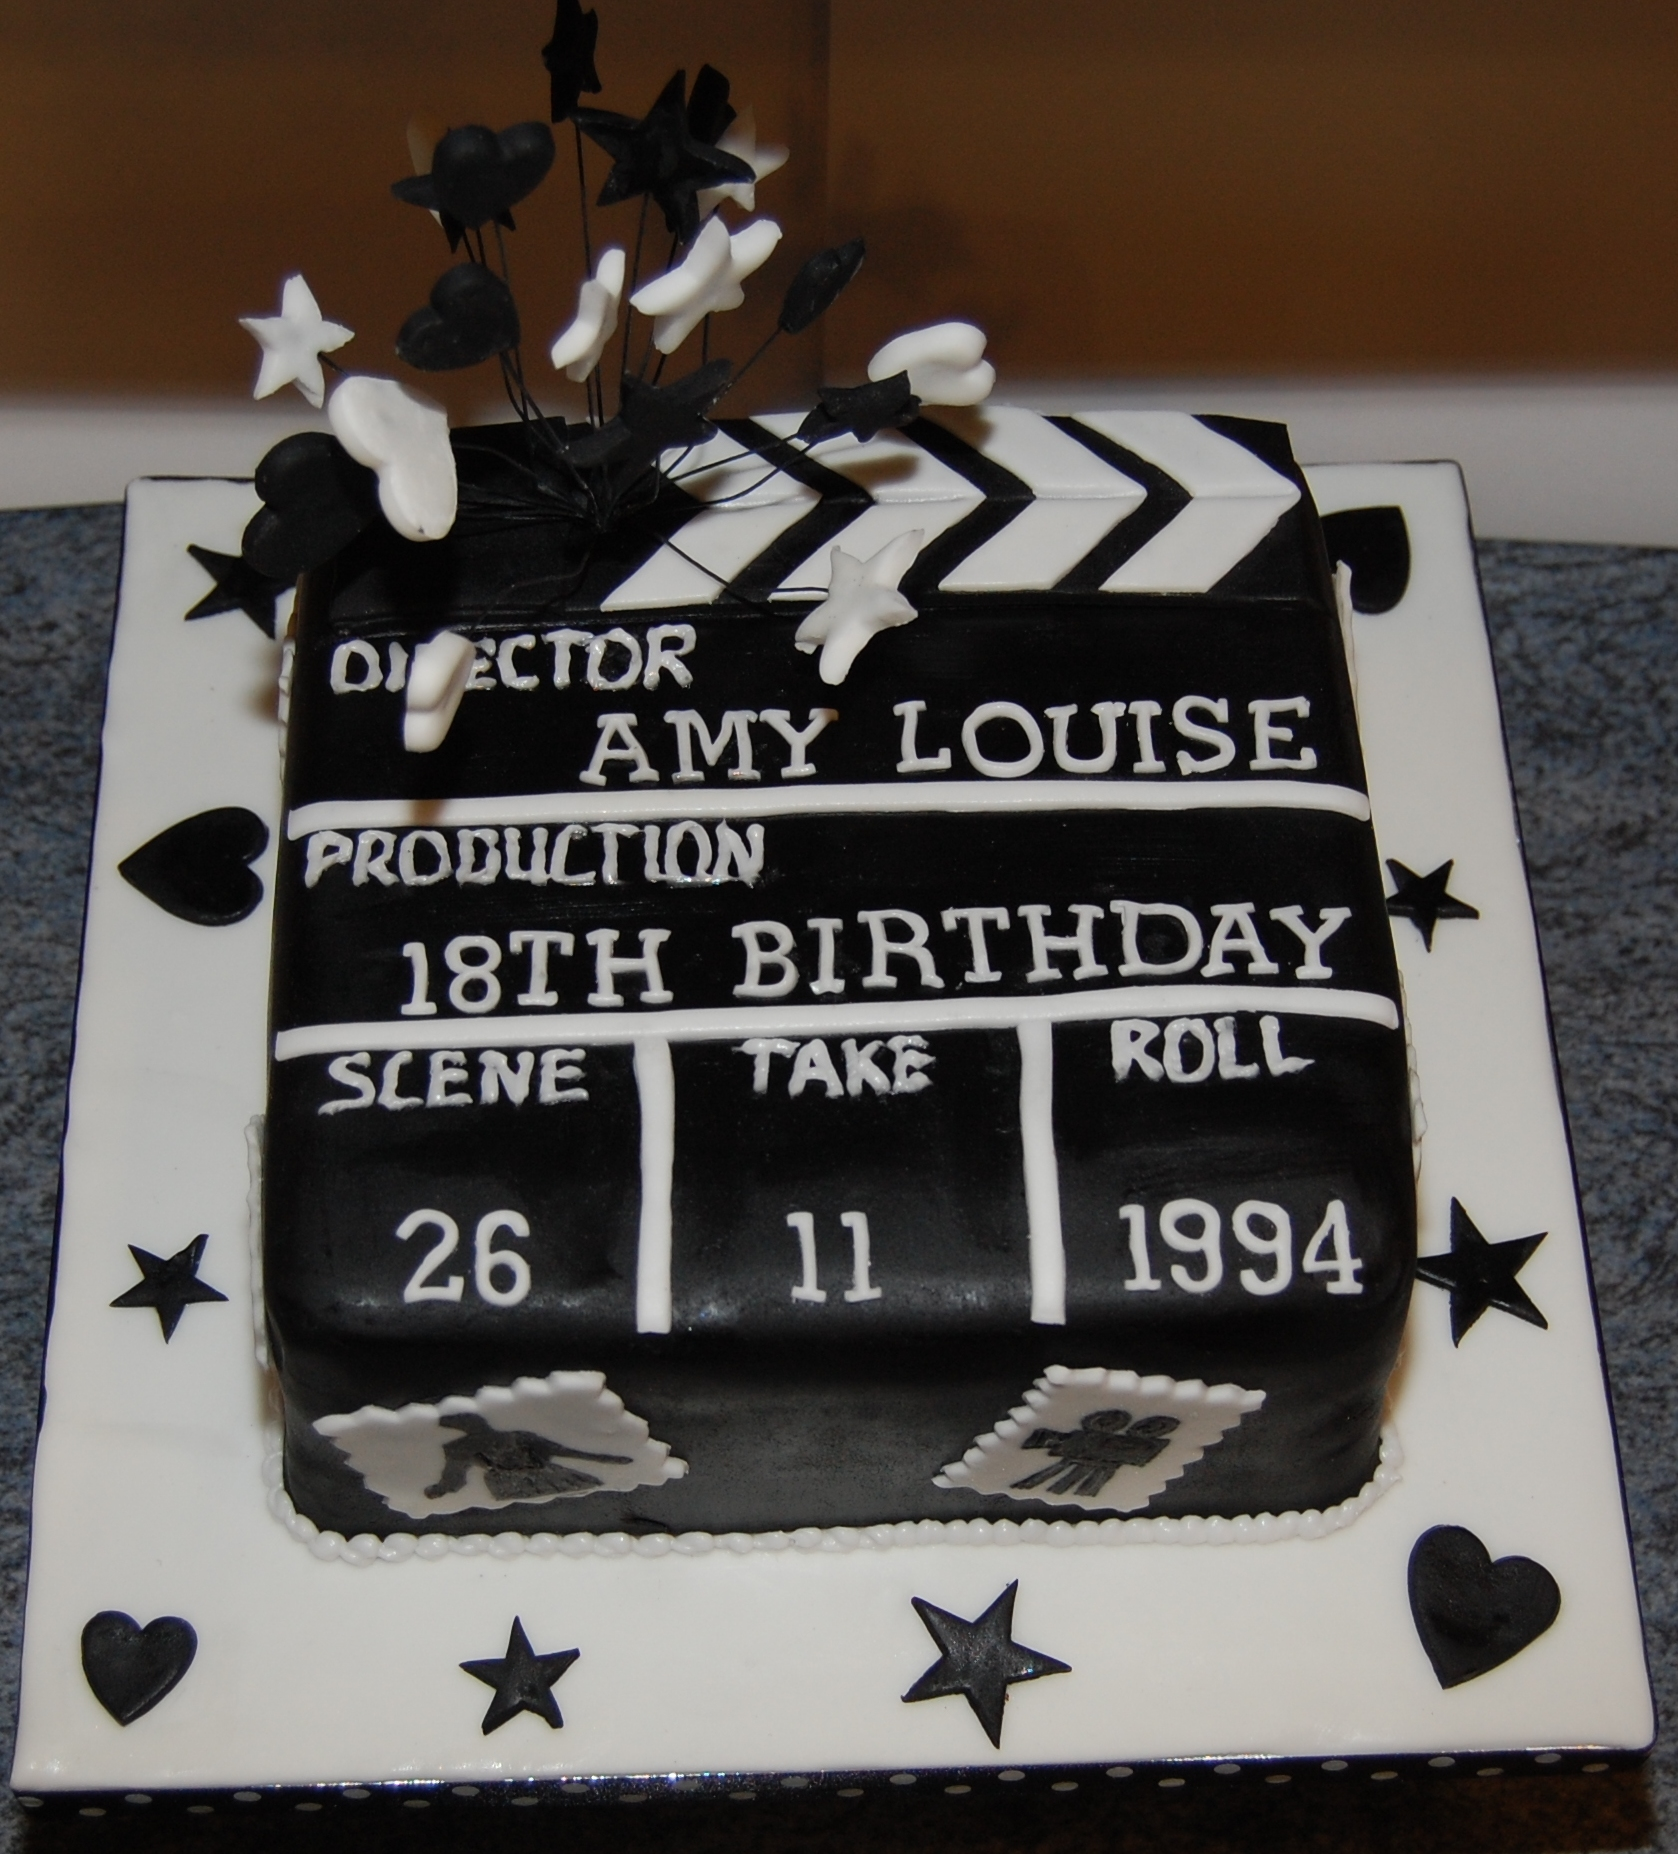 A Clapper Board Birthday Cake For A 18th Birthday